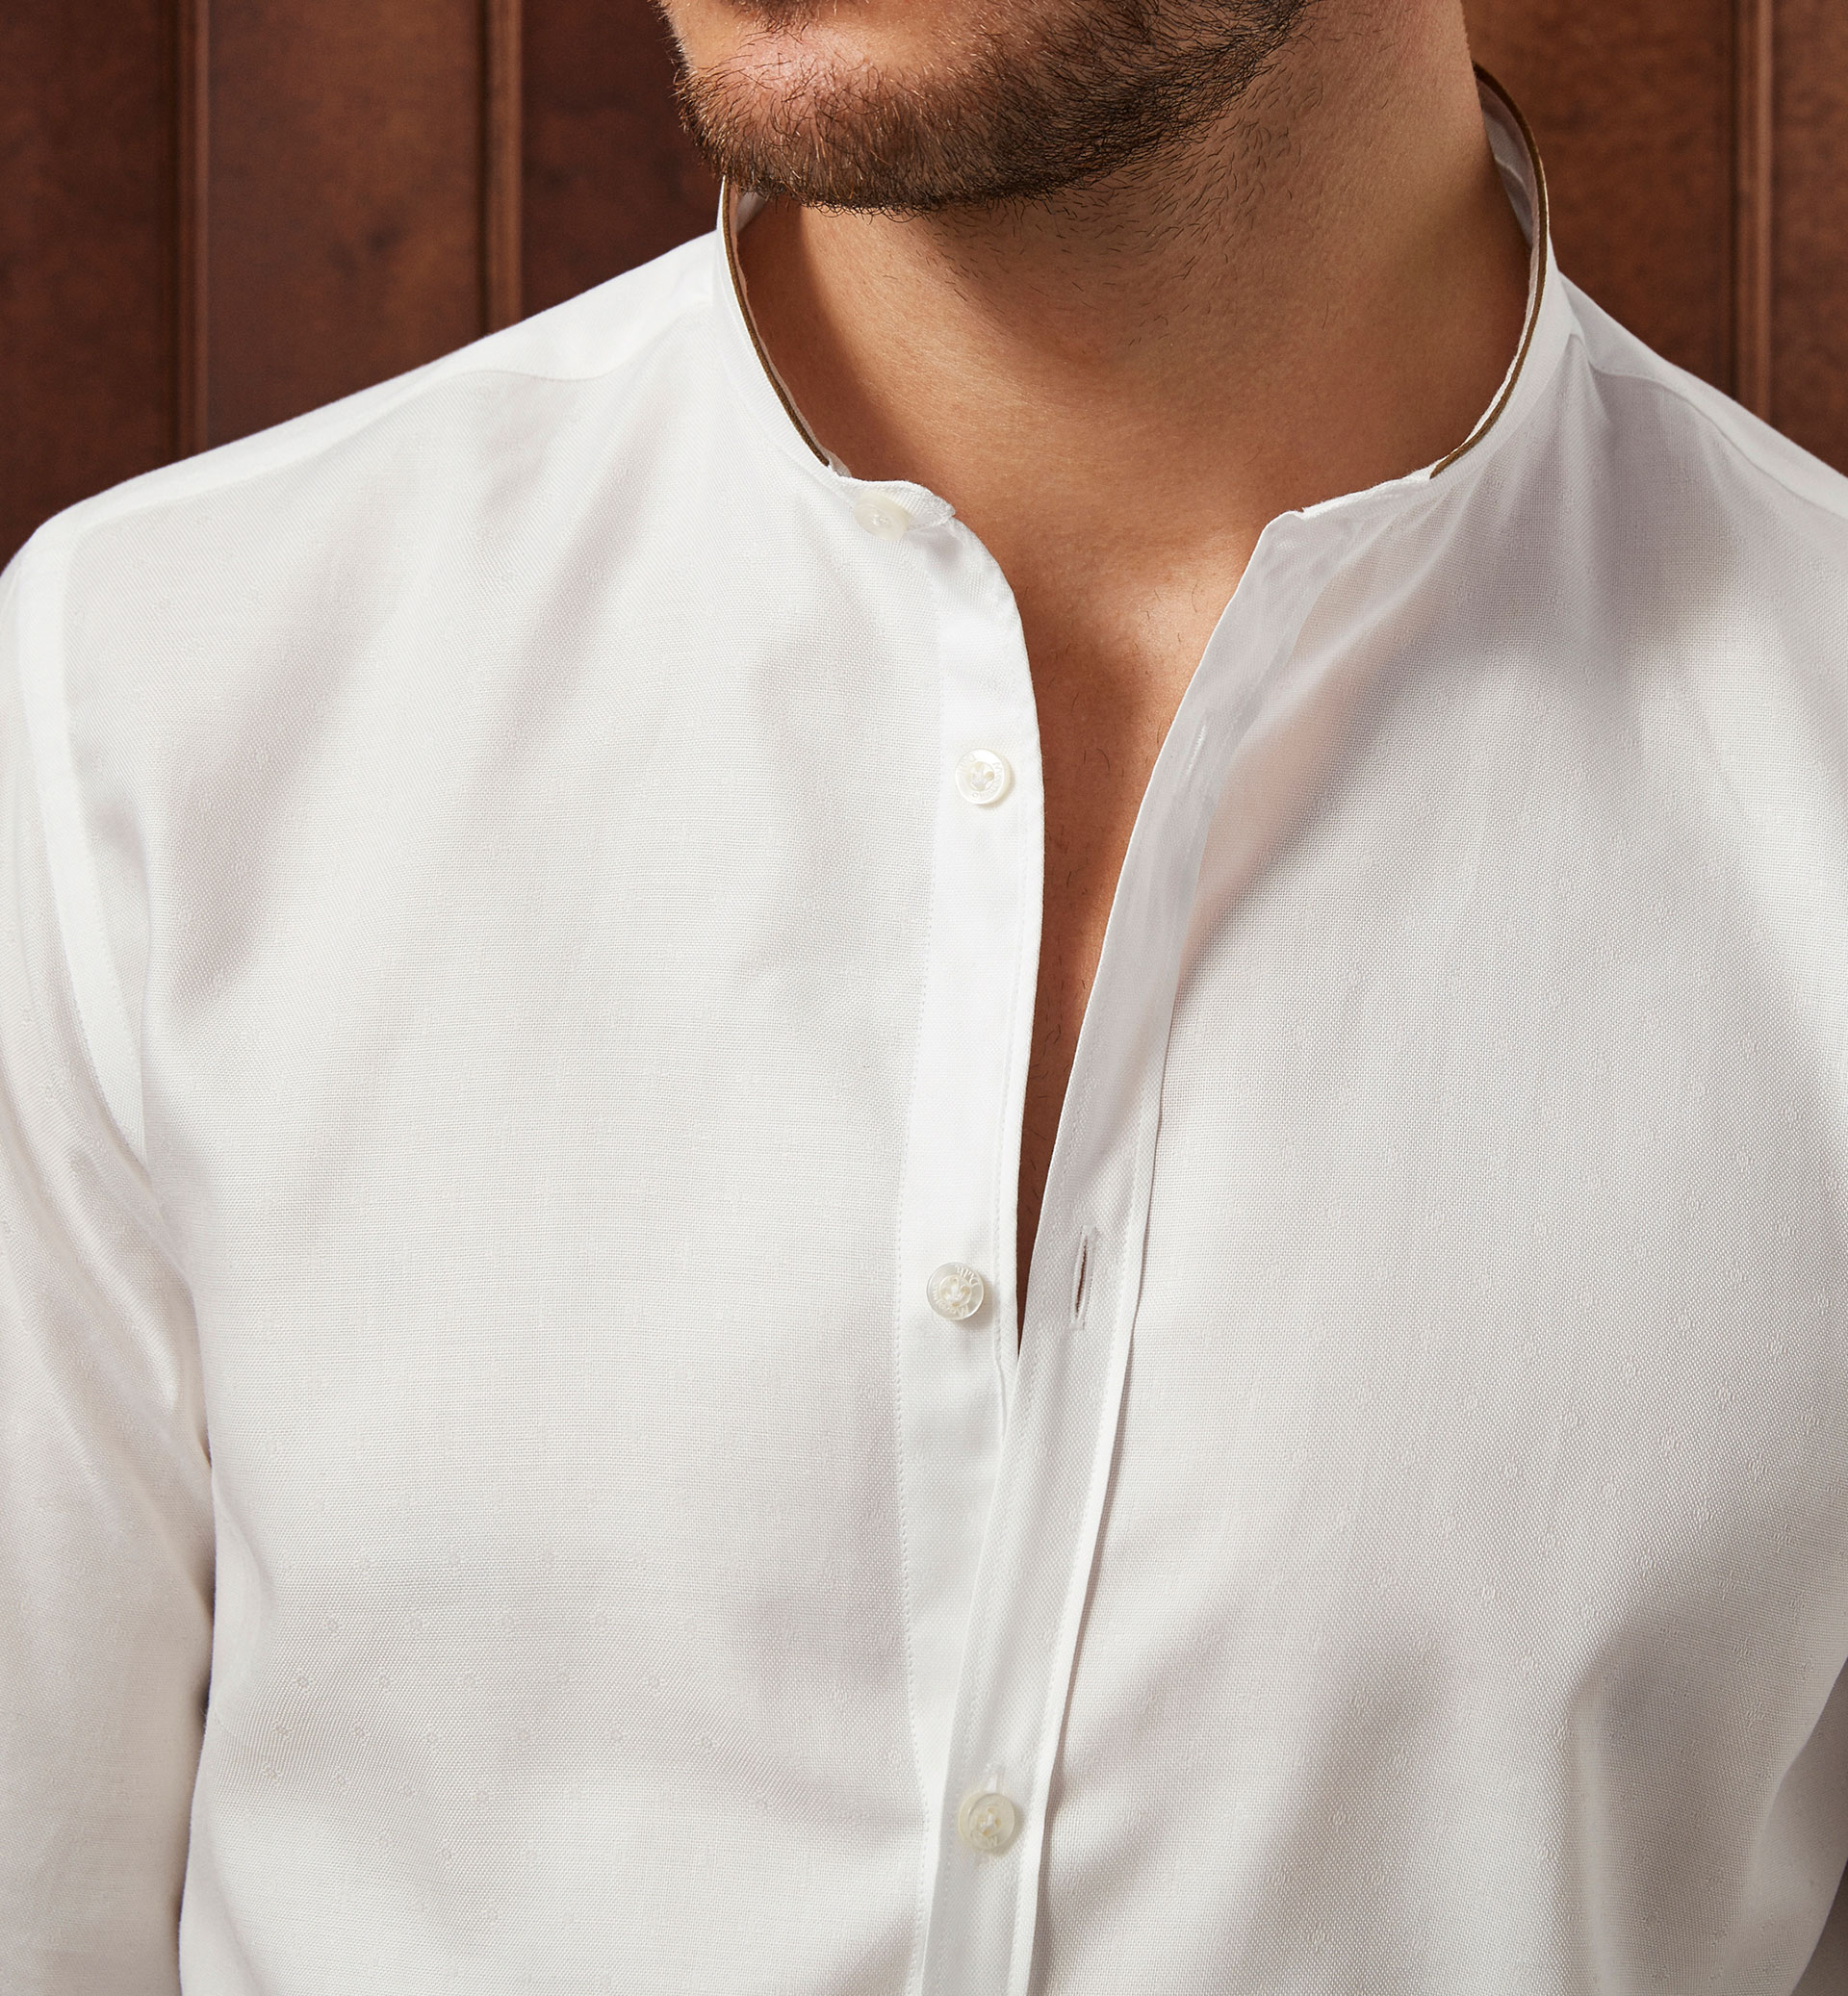 LIMITED EDITION PLAIN SHIRT WITH A TEXTURED WEAVE